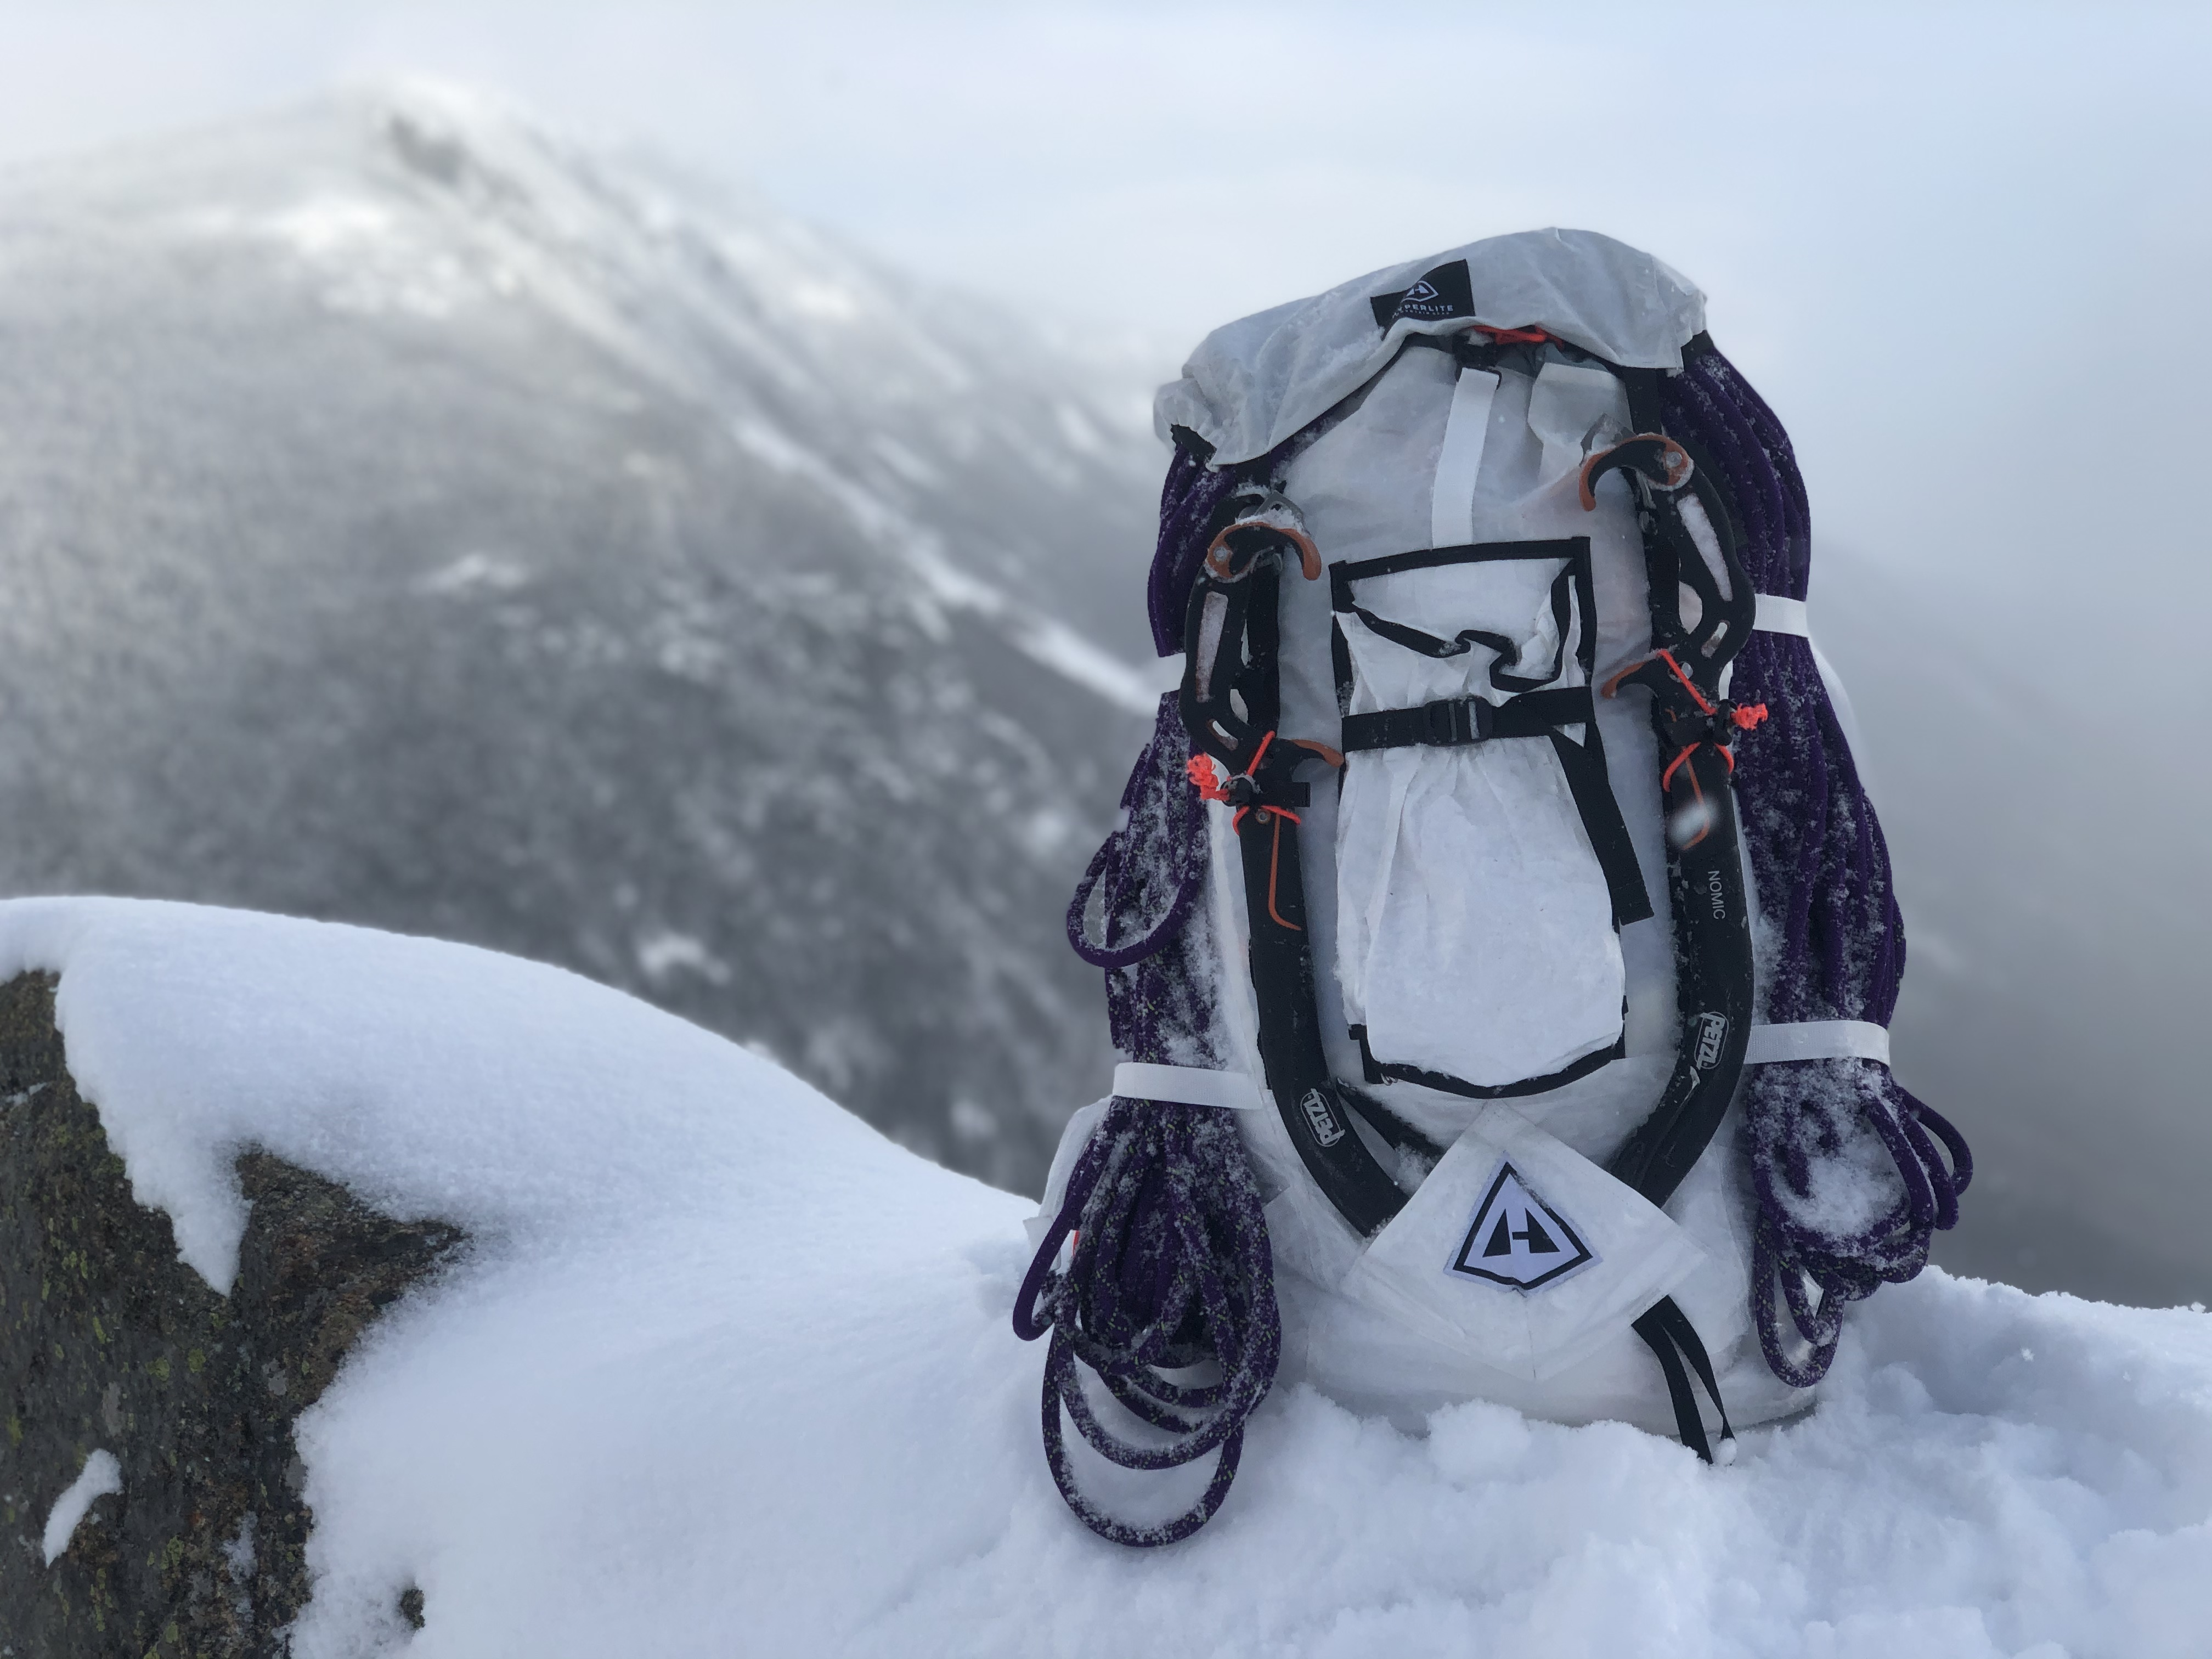 Hyperlite Mountain Gear Prism Pack Review